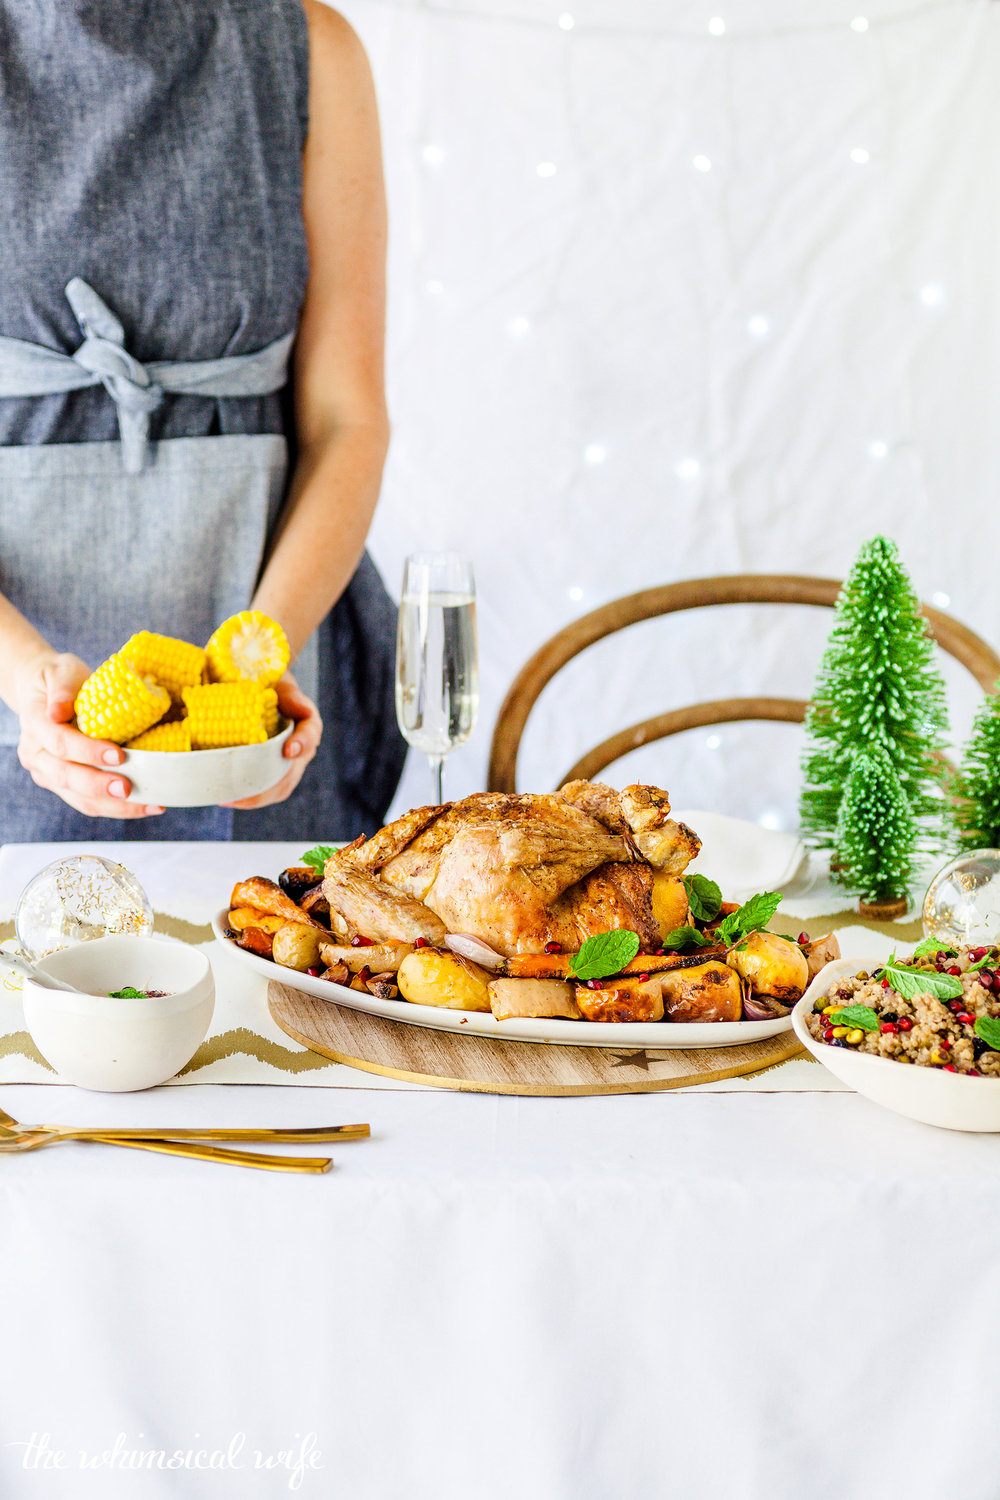 Moroccan Roast Chicken With Quinoa, Pistachio & Currant Stuffing {GF, DF} | The Whimsical Wife